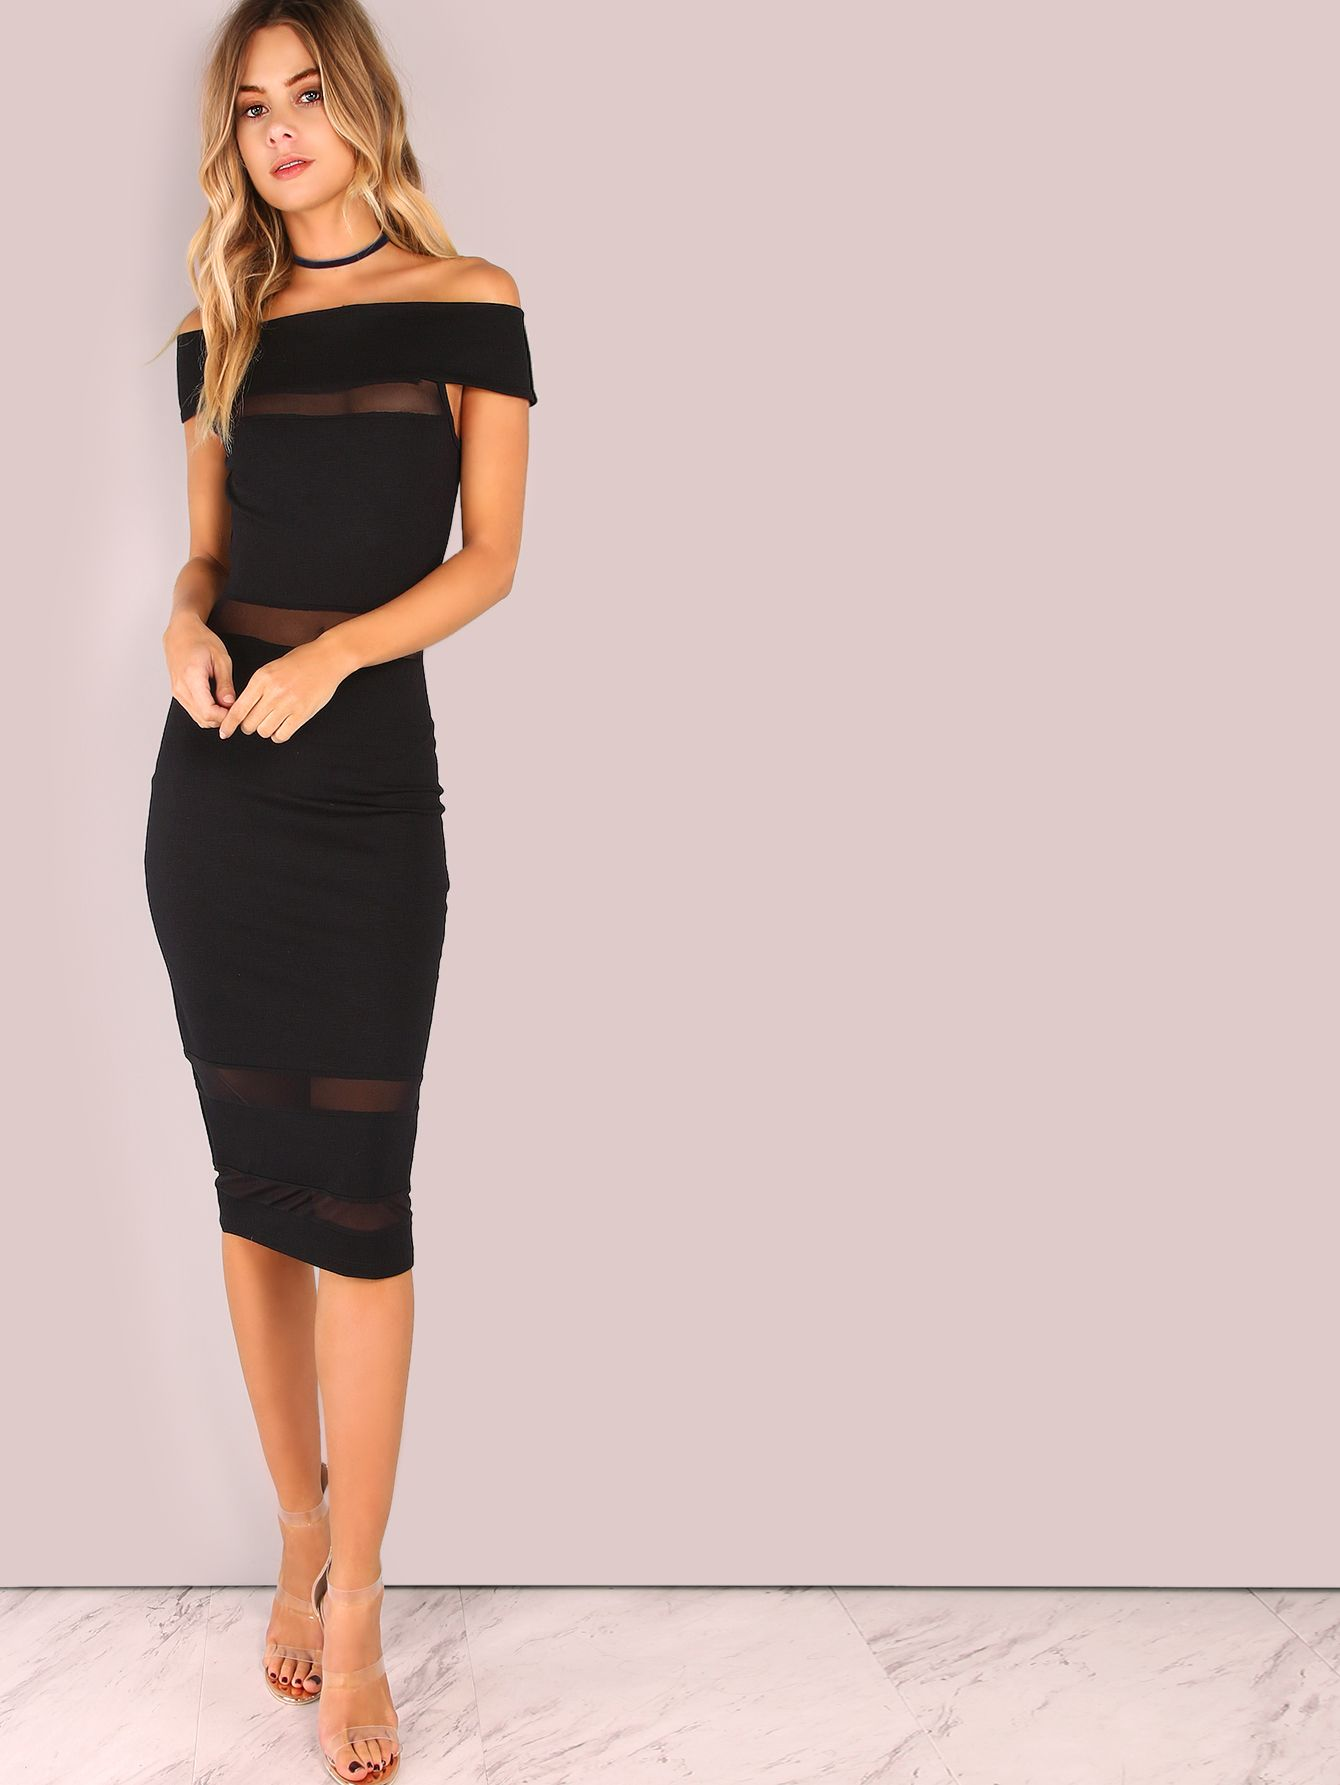 88cb964d64 Shop Off Shoulder Mesh Panel Bodycon Dress BLACK online. SheIn offers Off  Shoulder Mesh Panel Bodycon Dress BLACK & more to fit your fashionable  needs.